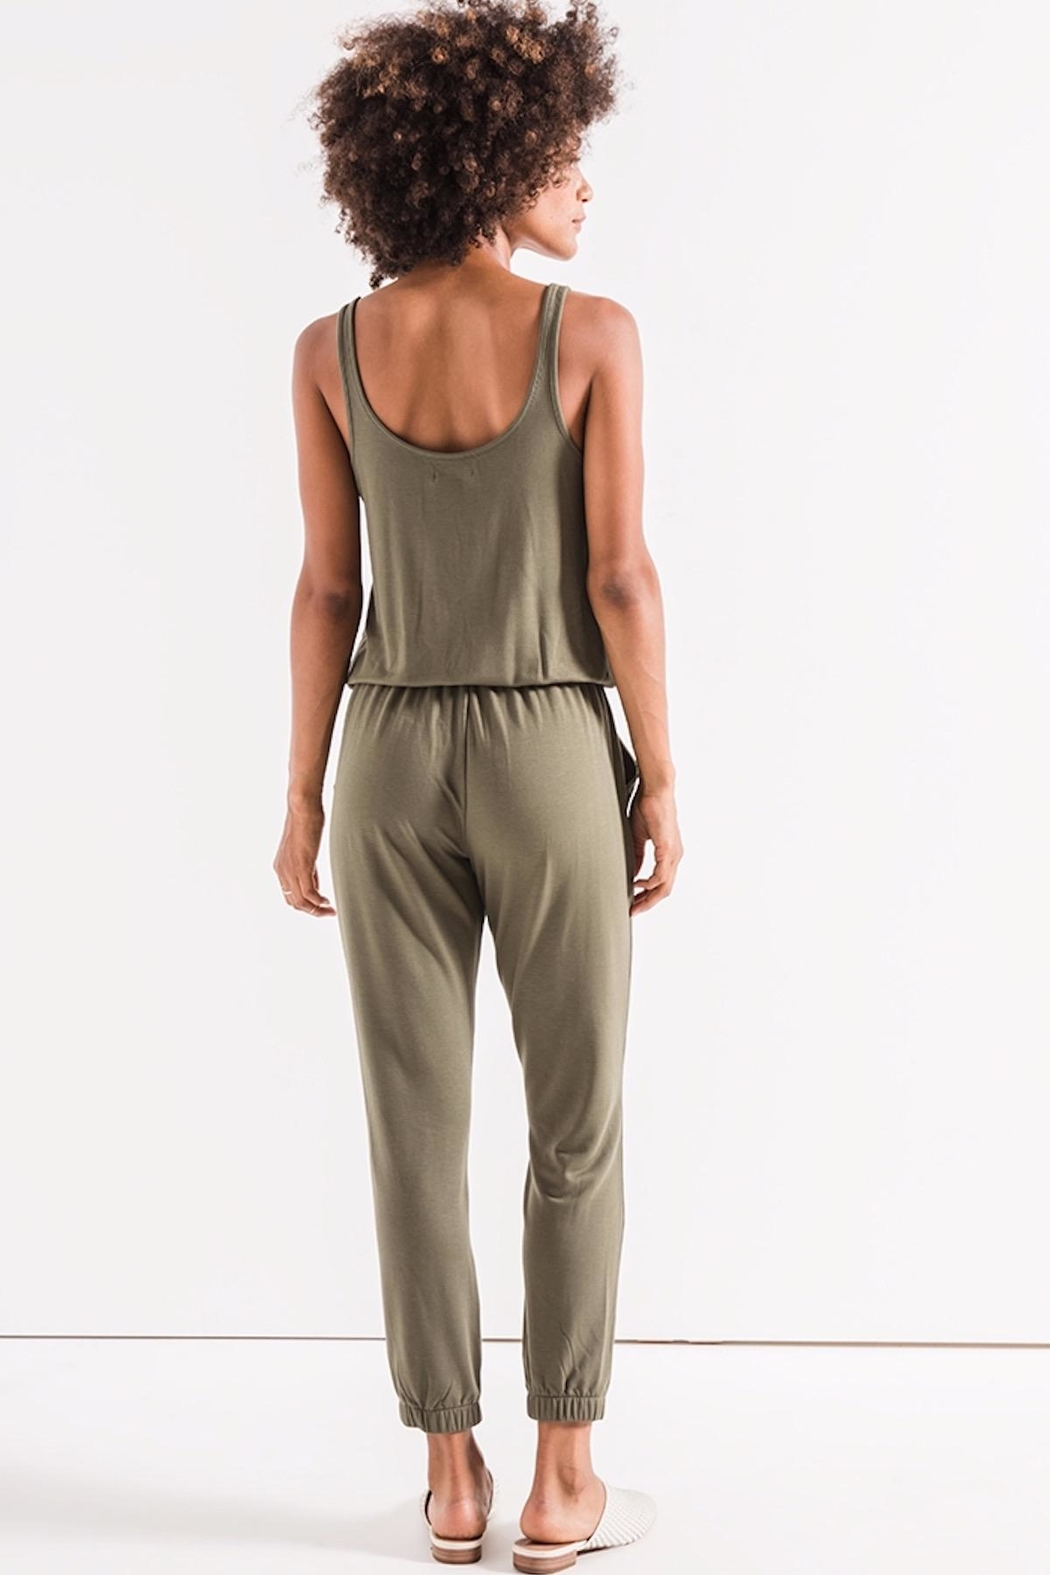 z supply Green Tank Jumpsuit - Back Cropped Image